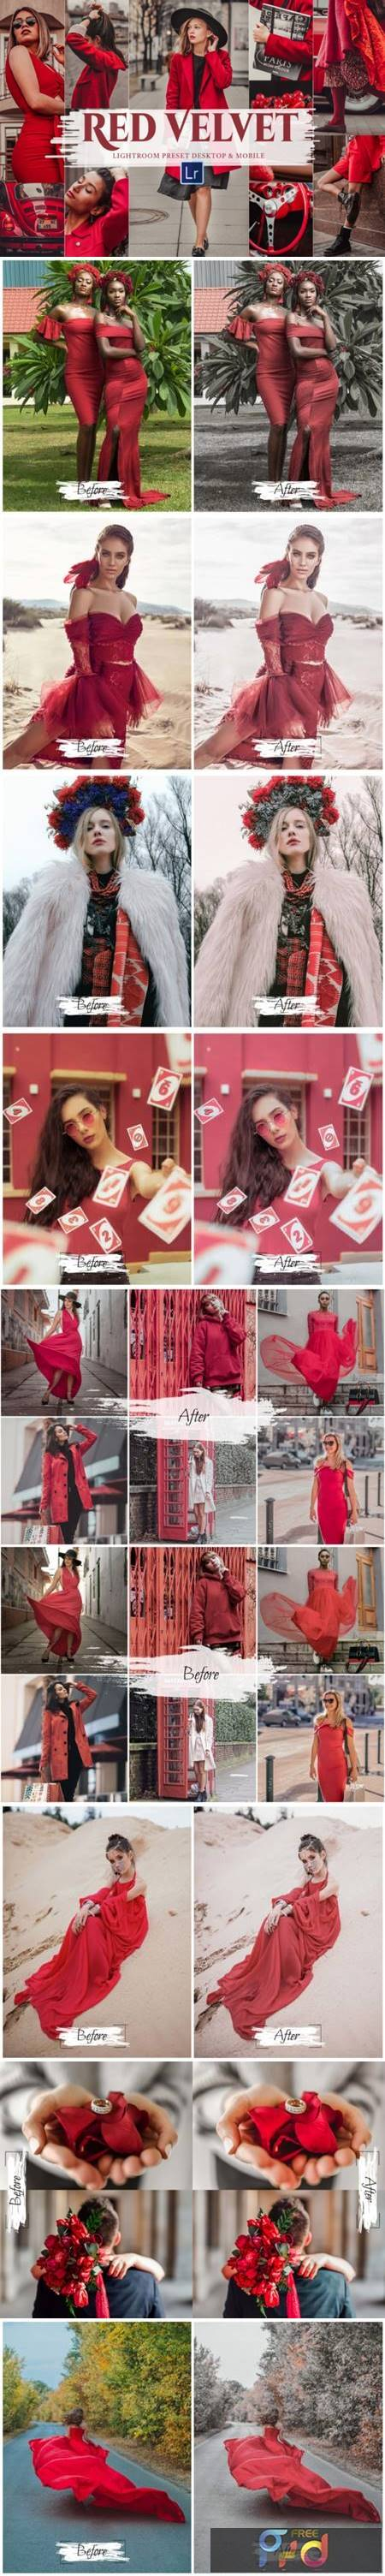 10 Red Velvet Mobile & Lightroom Presets 8719463 1